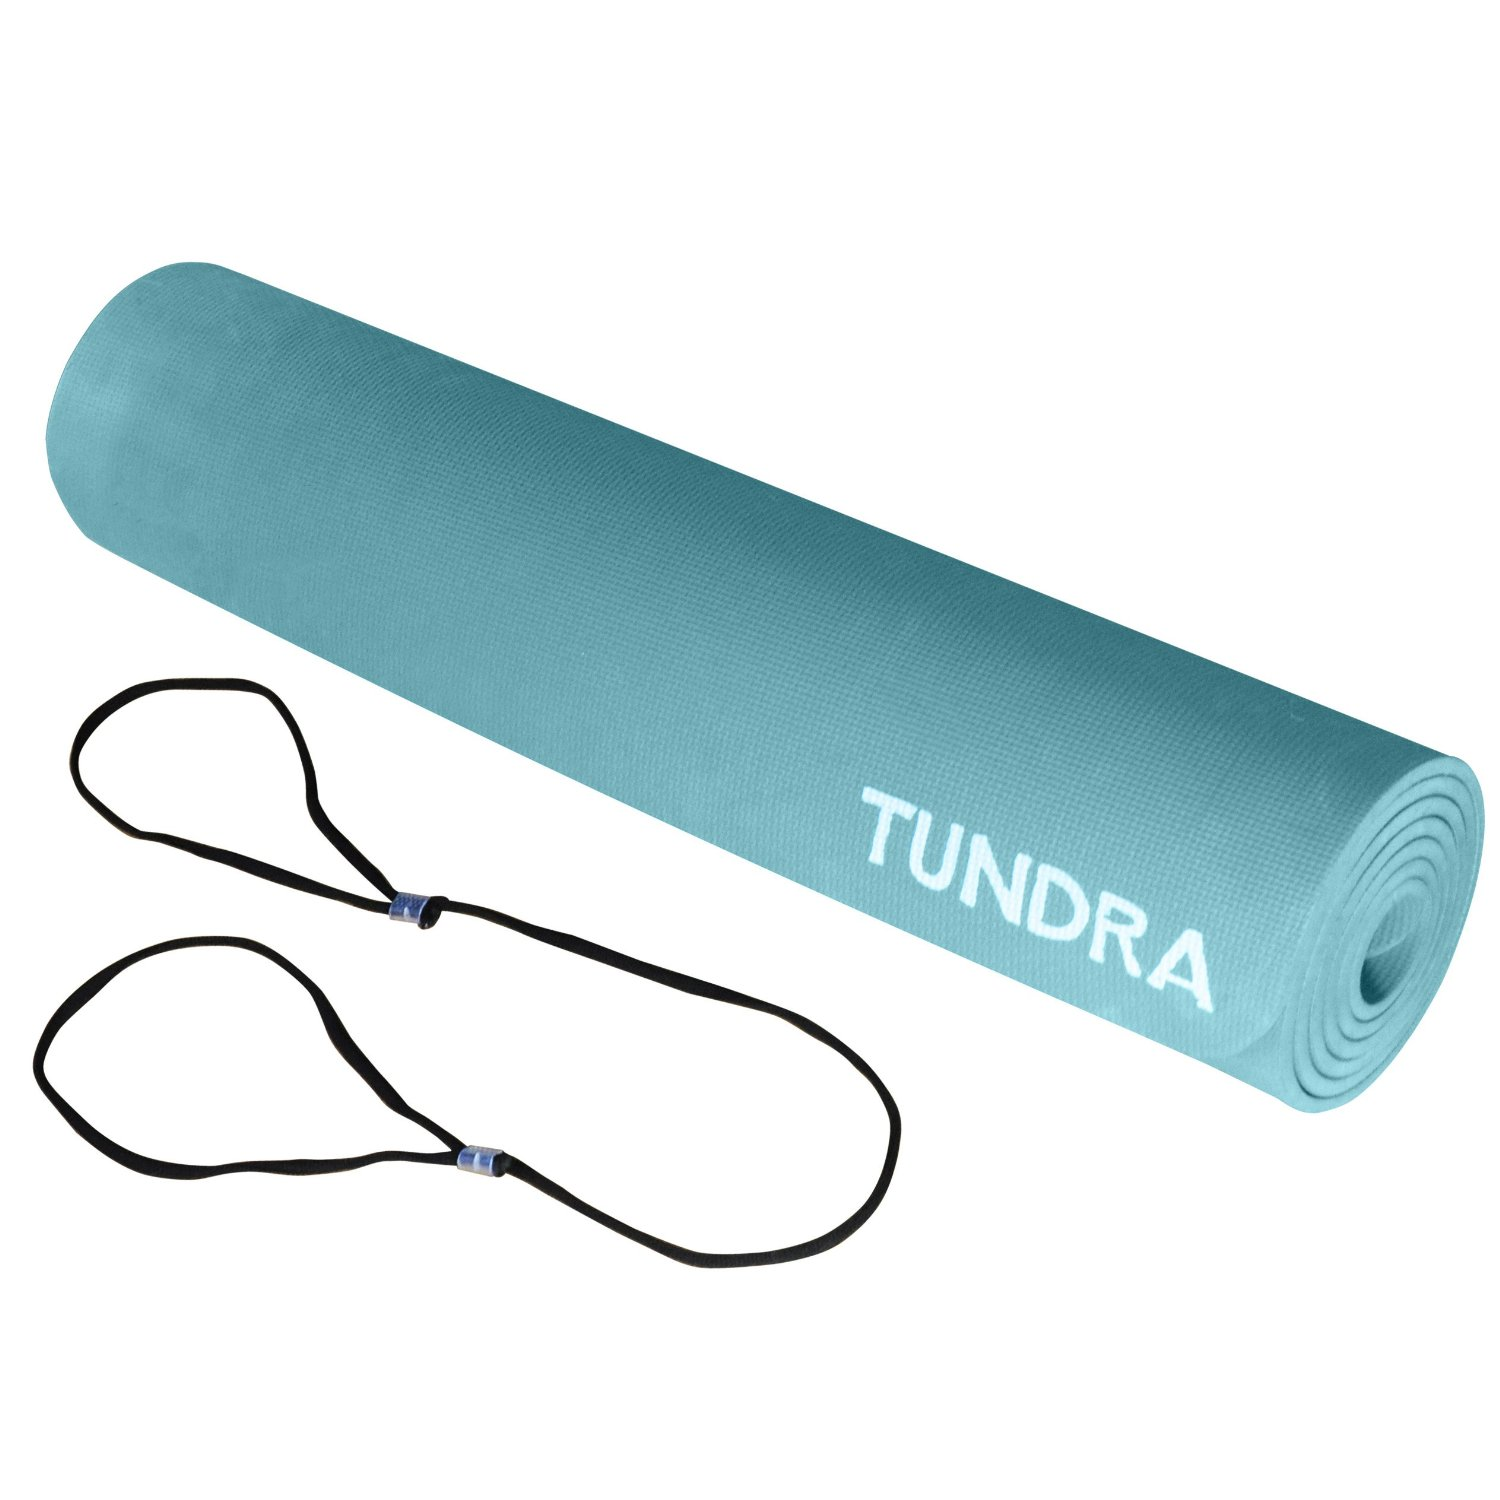 Tundra EZ Yoga Mat, Extra Long And Thick, Carrying Strap, Non-Slip, Eco Friendly, Lightweight, Great For Pilates And Floor Exercise.